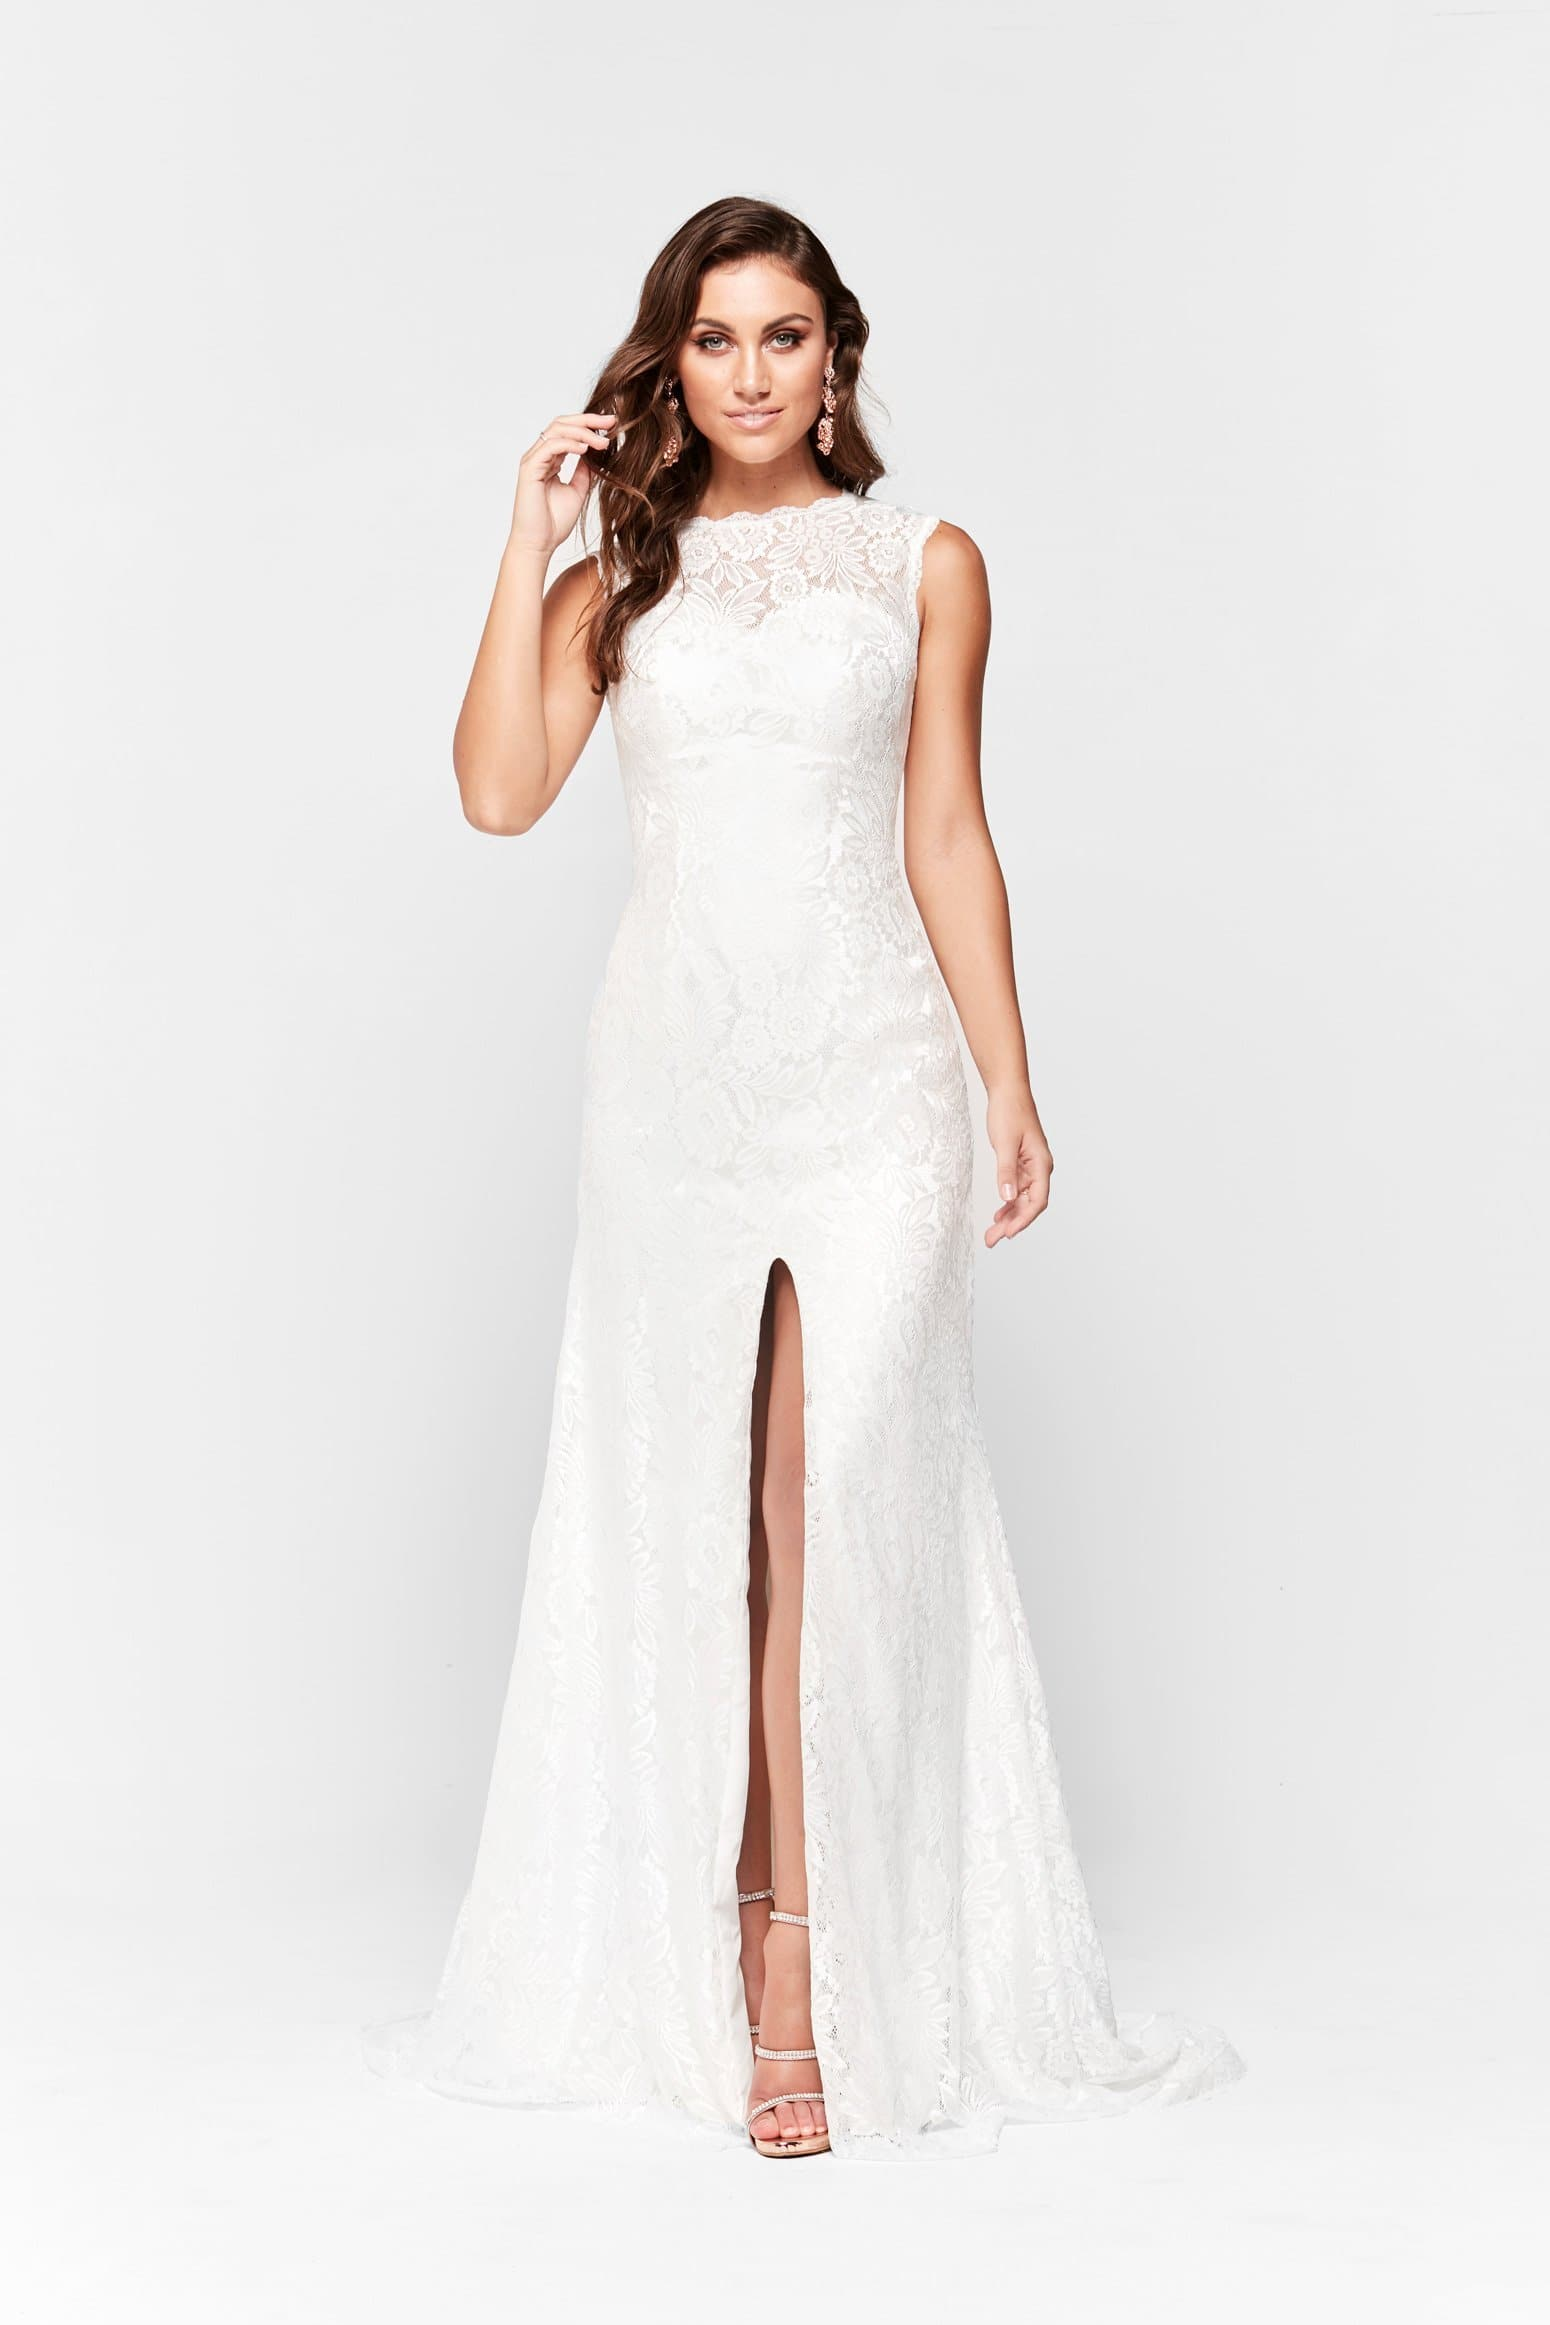 A&N Gabriella - White Lace Gown with High Neck and Leg Split